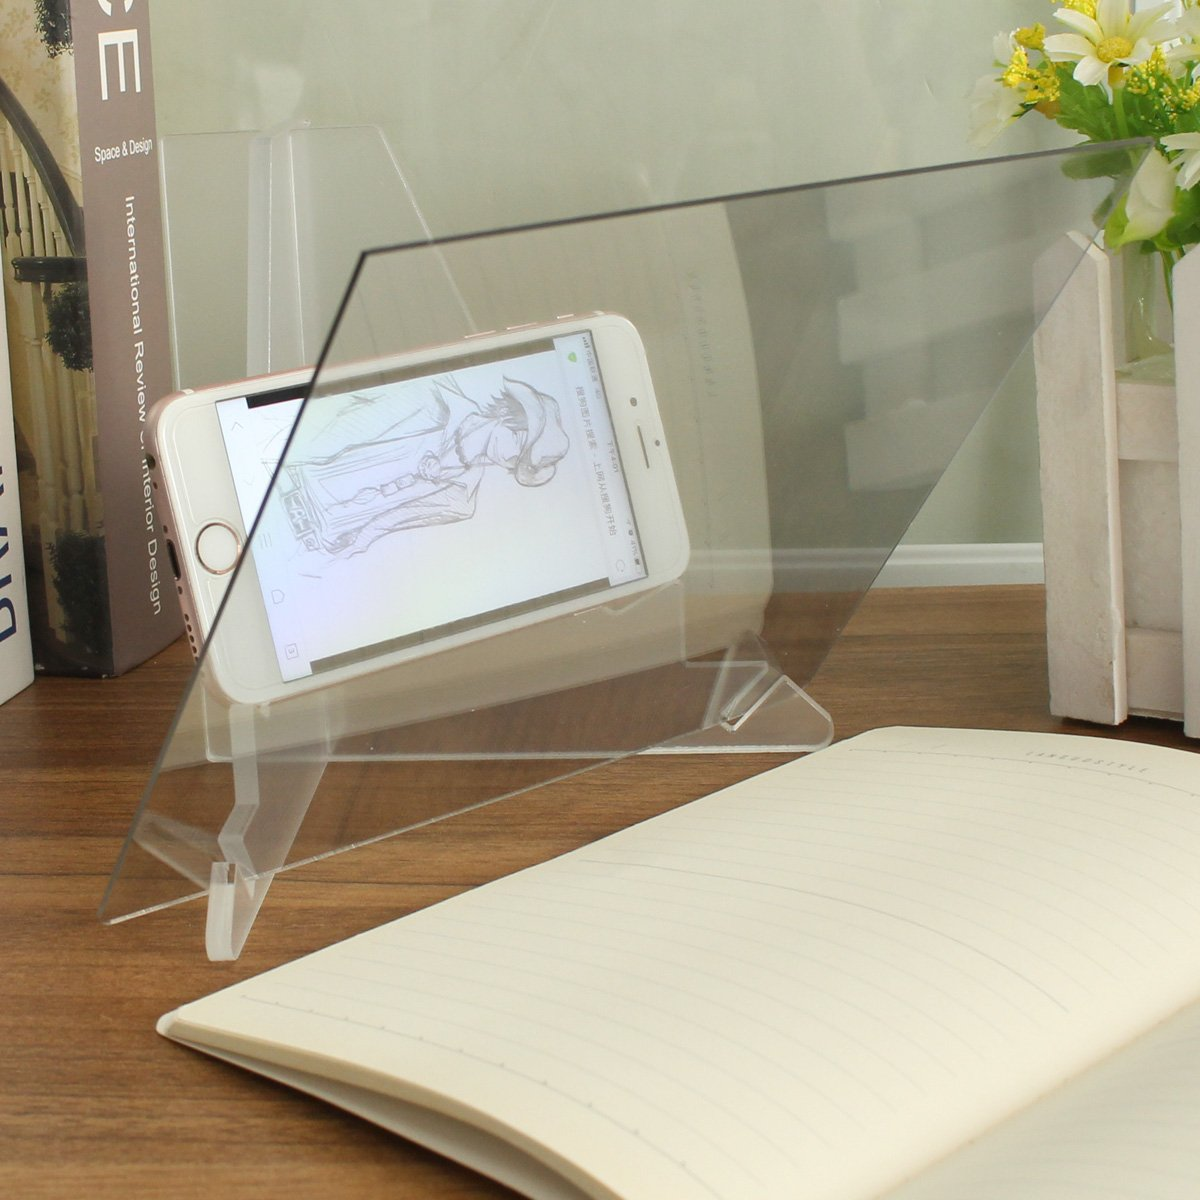 Vivona Hardware & Accessories Drawing Board Pad Table Sketch Drawing Linfen Board Reflection of Mirrors